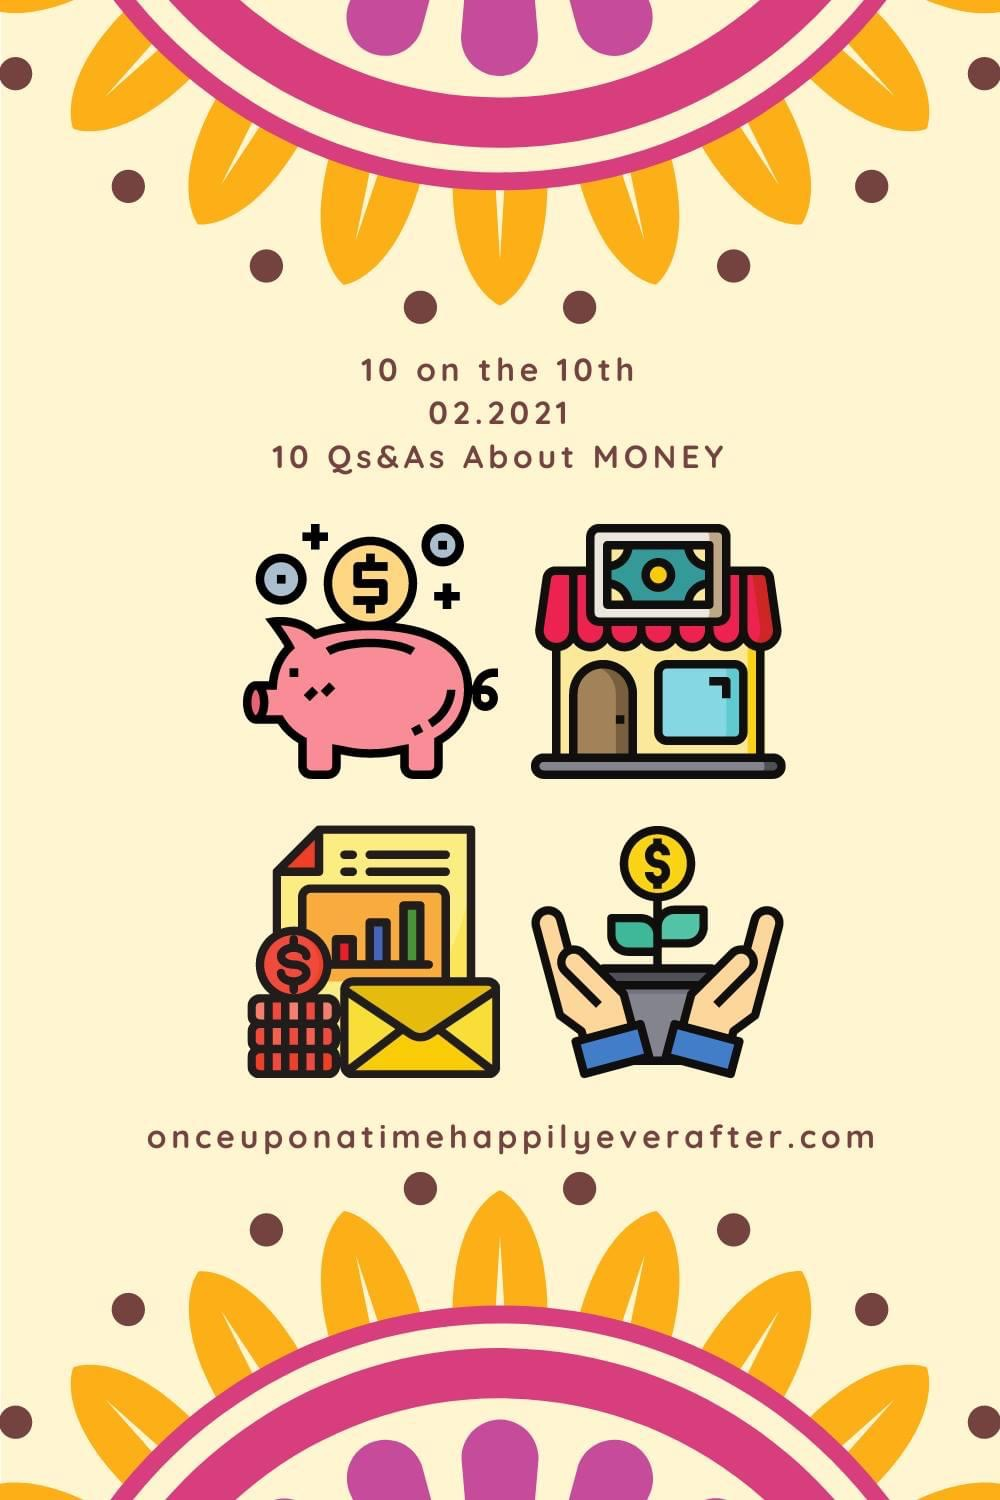 10 Q&As About Money